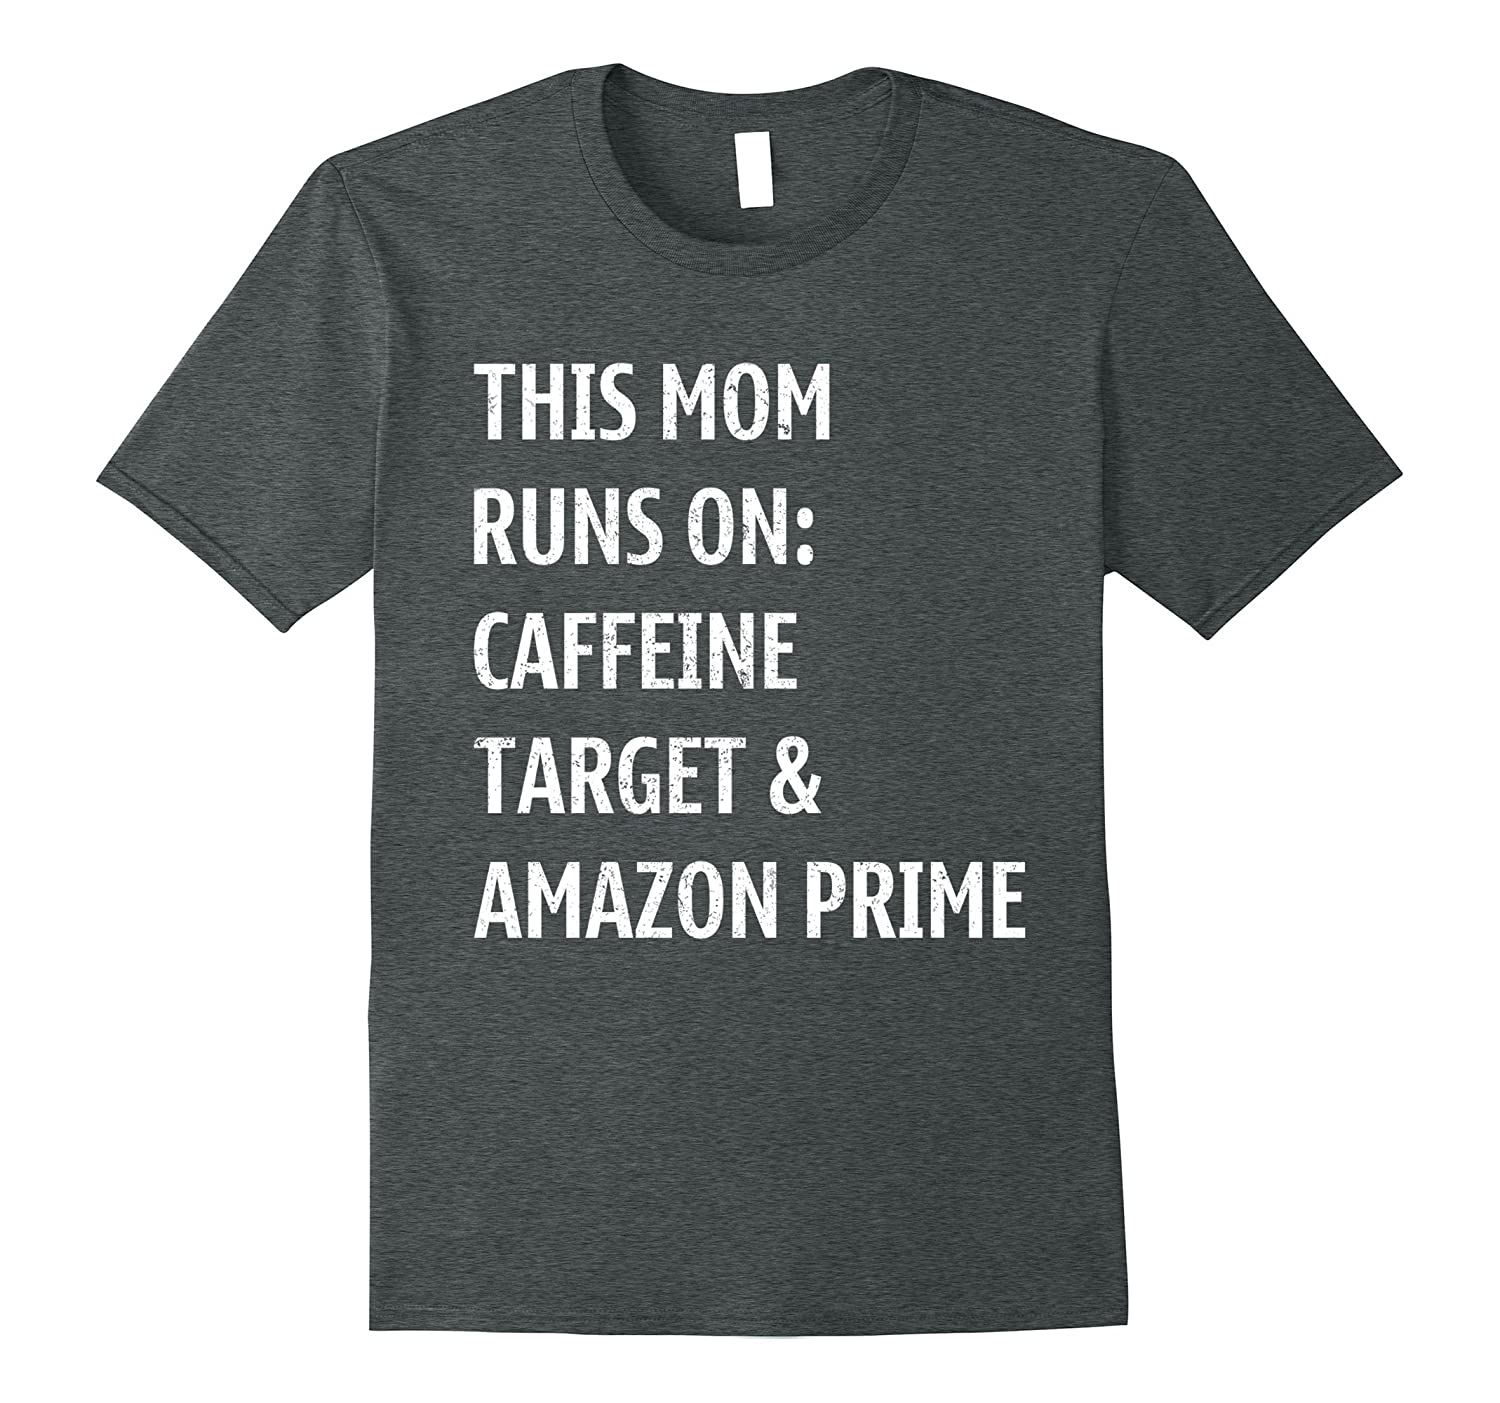 This Mom Runs On Caffeine Target & Prime T shirt